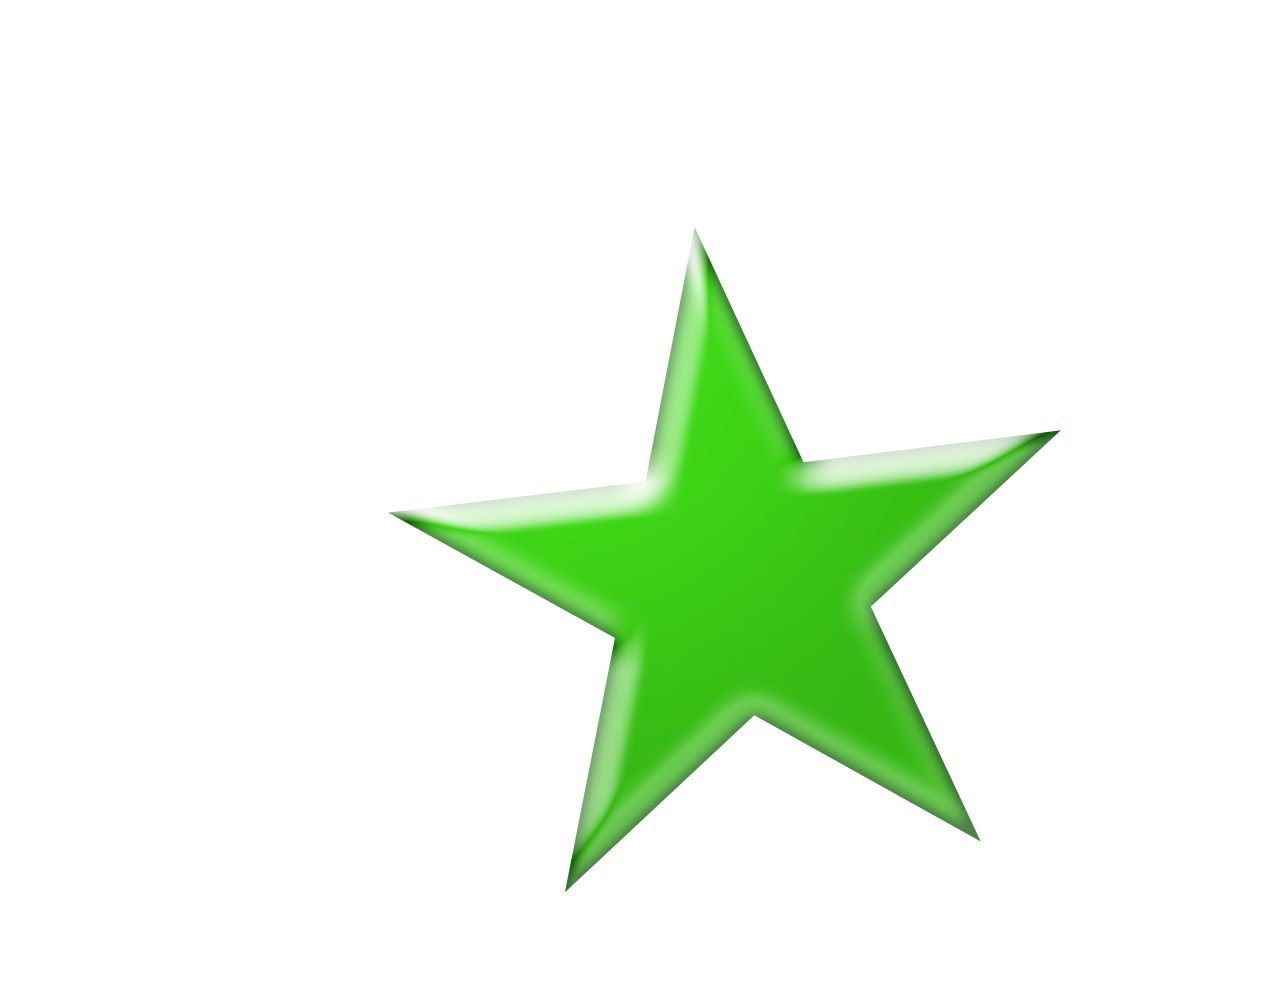 5 Point Star With Lime Green Glass Effects In Adobe